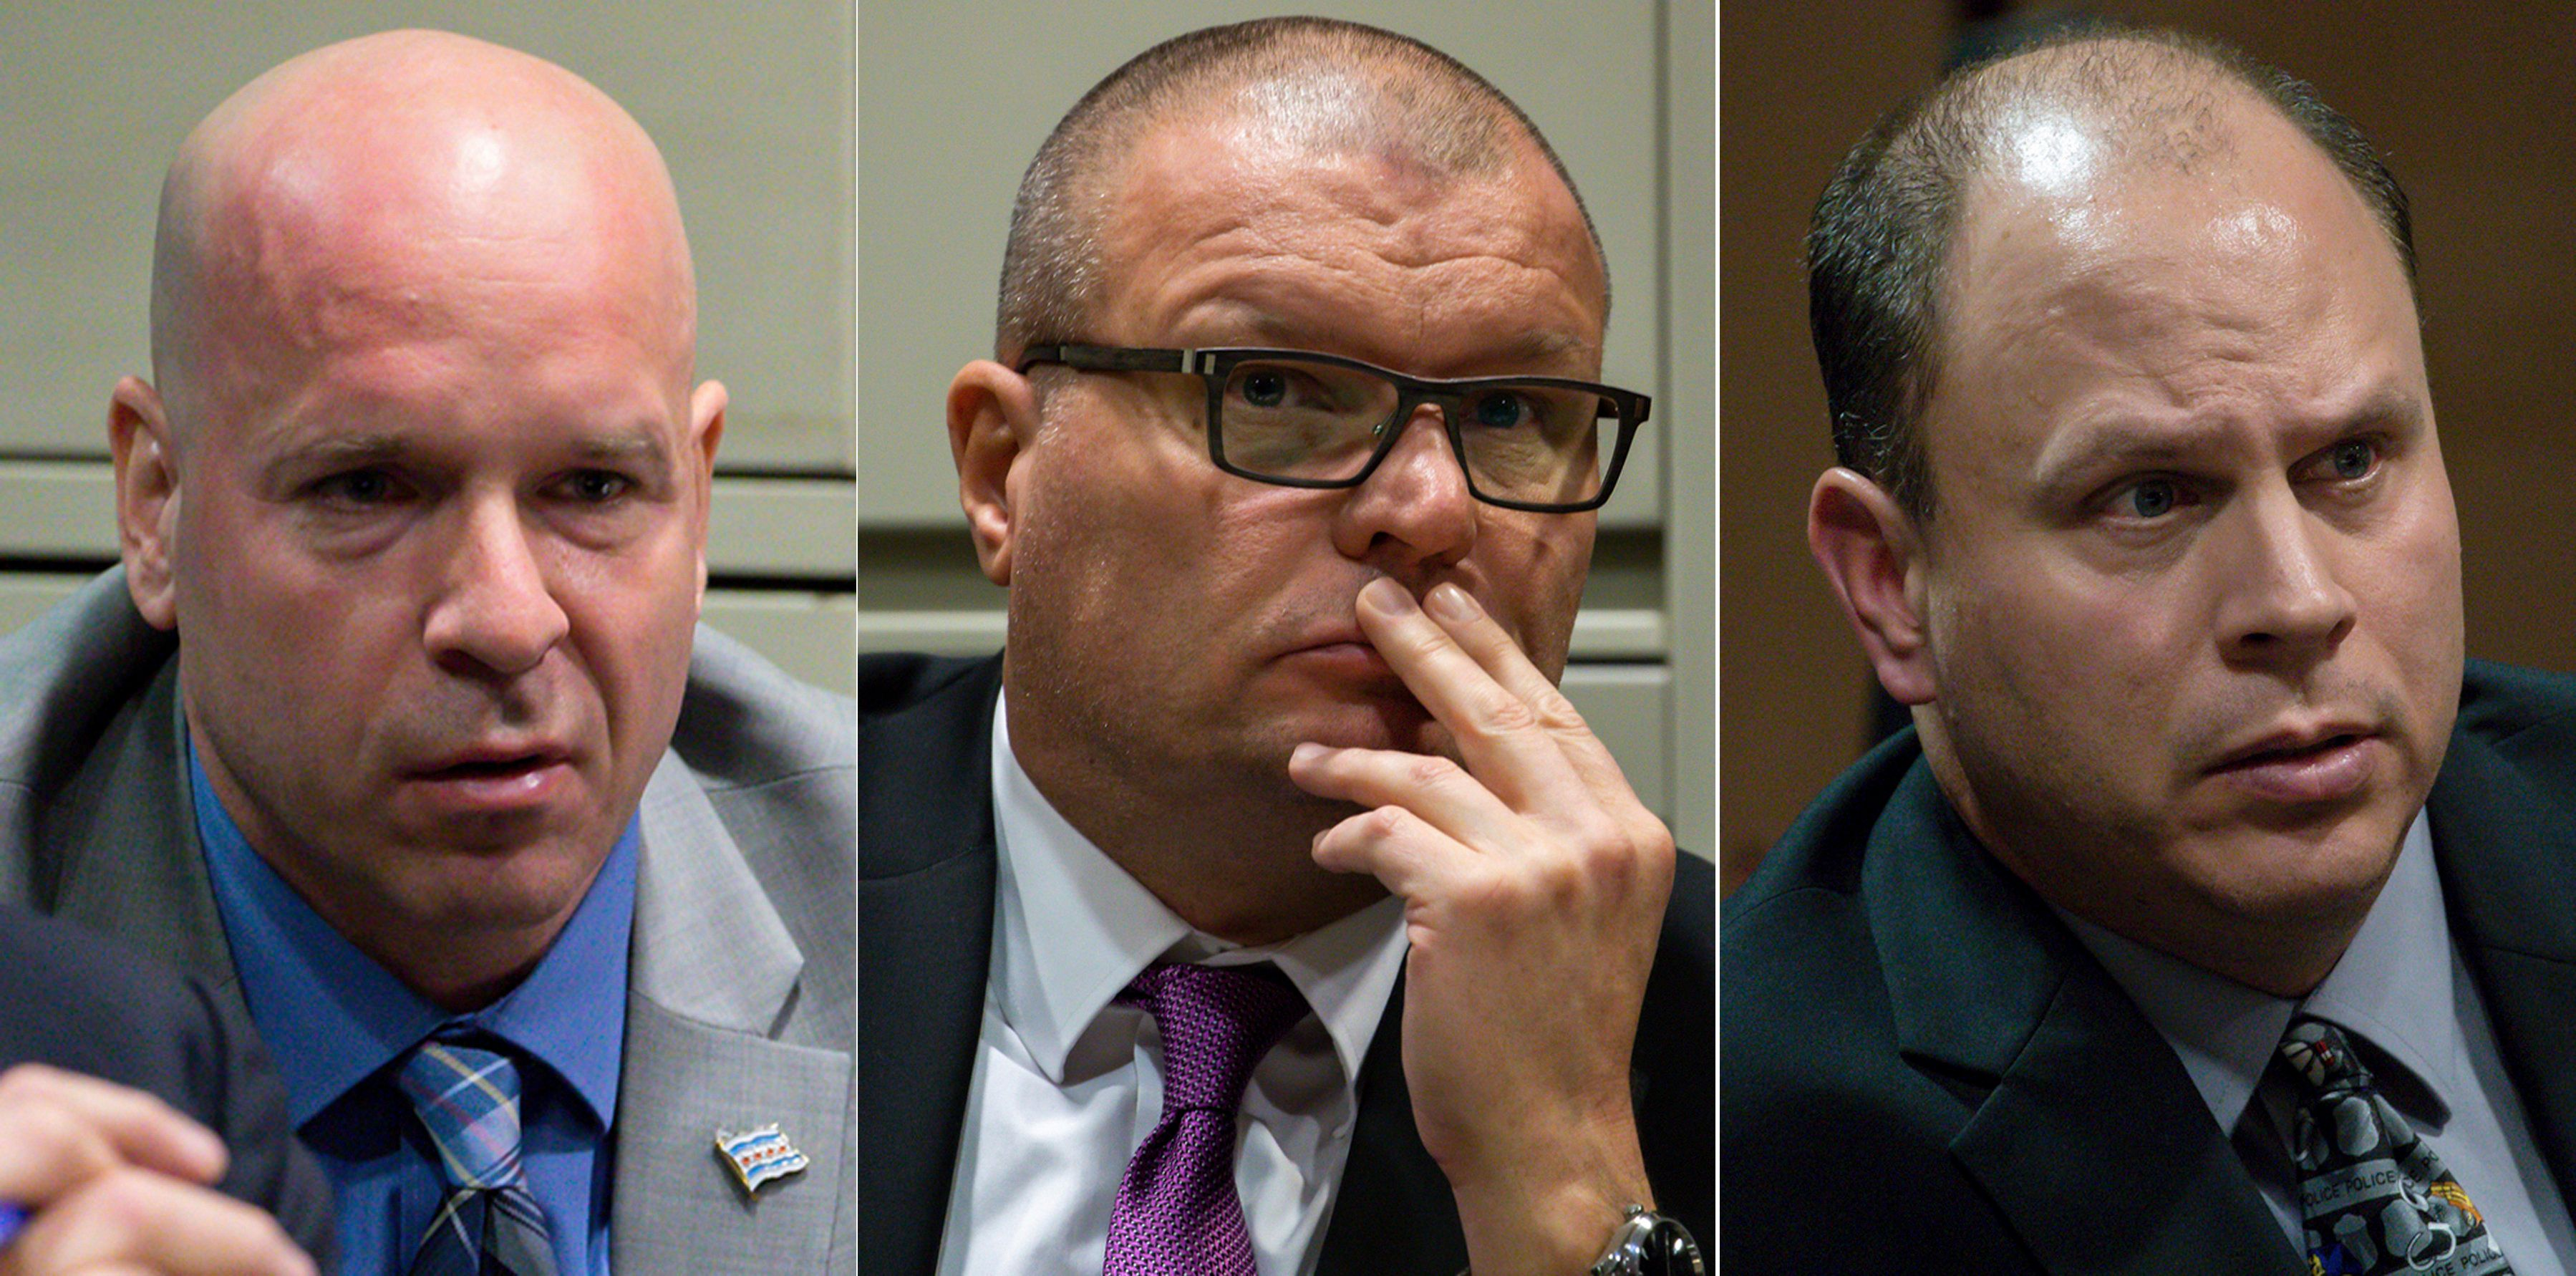 FILE - This combination of Nov. 28, 2018 file photos shows former Chicago Police officer Joseph Walsh, left, former detective David March and former officer Thomas Gaffney during a bench trial before Judge Domenica A. Stephenson at Leighton Criminal Court Building in Chicago. Cook County Judge Domenica Stephenson is set to announce a verdict Thursday, Jan. 17, 2019, for the three Chicago police officers accused of lying in their reports to protect the white officer who fatally shot black teenager Laquan McDonald. (Zbigniew Bzdak/Chicago Tribune via AP, Pool, File)